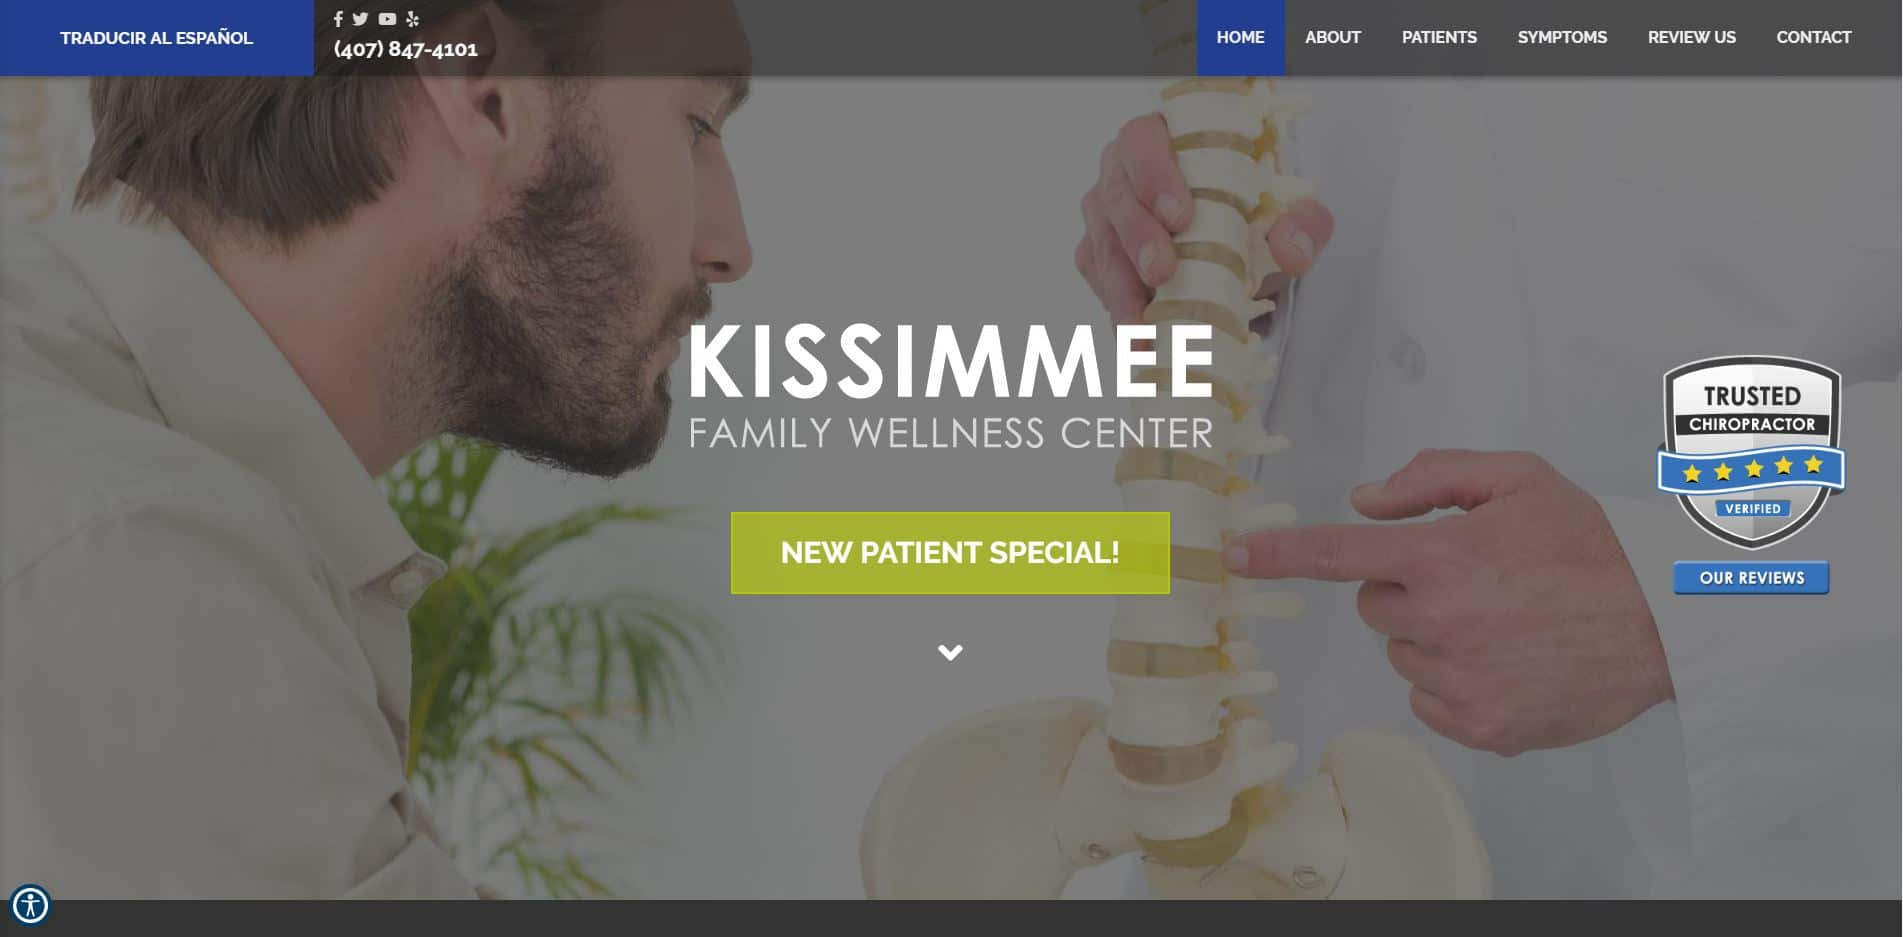 Chiropractor in Kissimmee